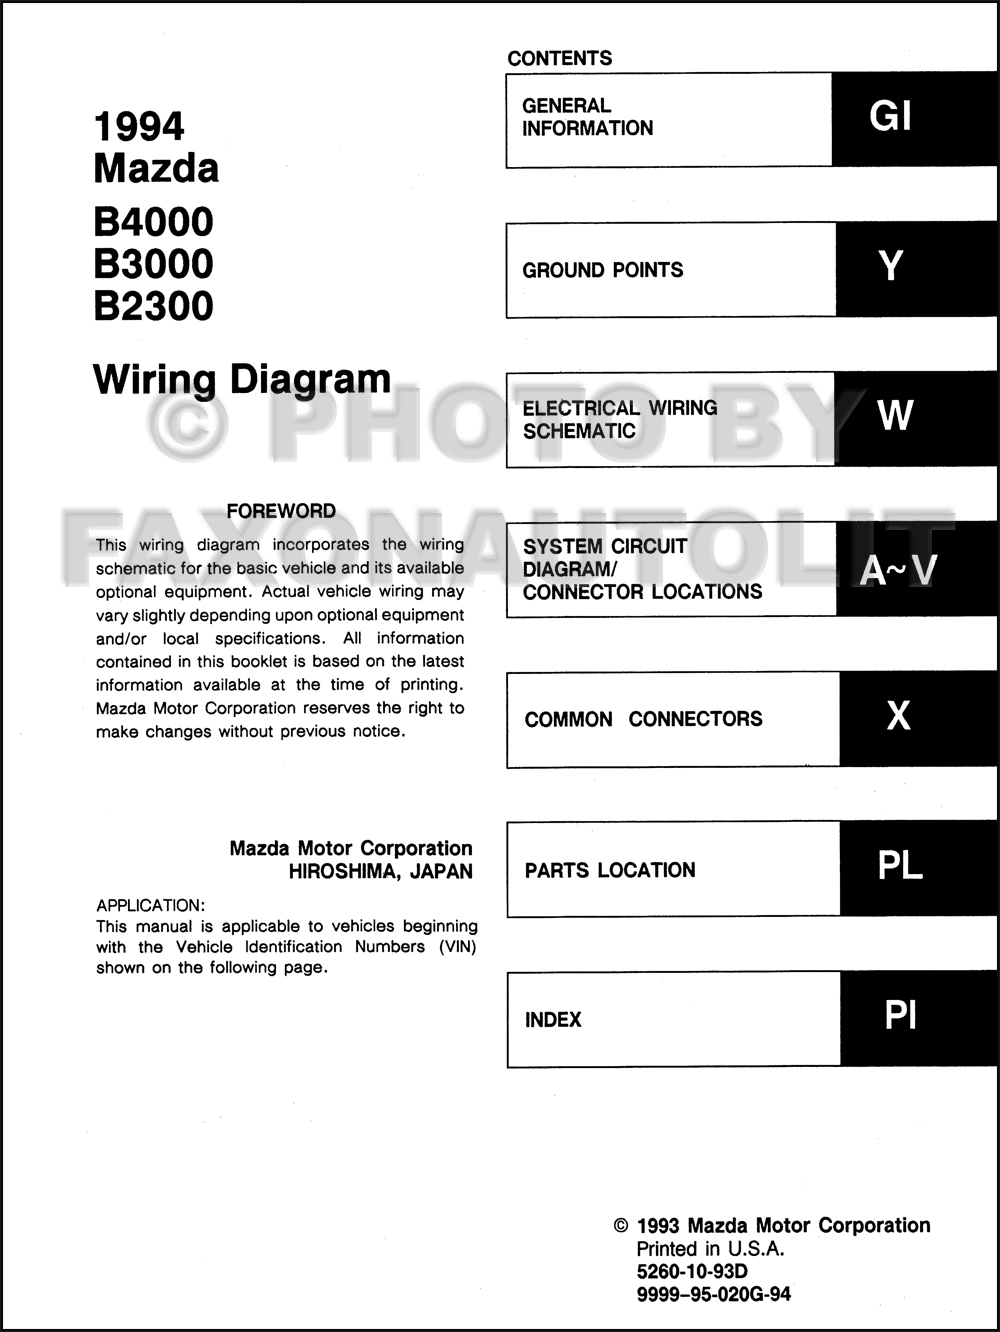 1994MazdaB4000B3000B23000OWD TOC 1994 mazda b4000 b3000 b2300 pickup truck wiring diagram manual Pioneer Car Stereo Wiring Diagram at panicattacktreatment.co